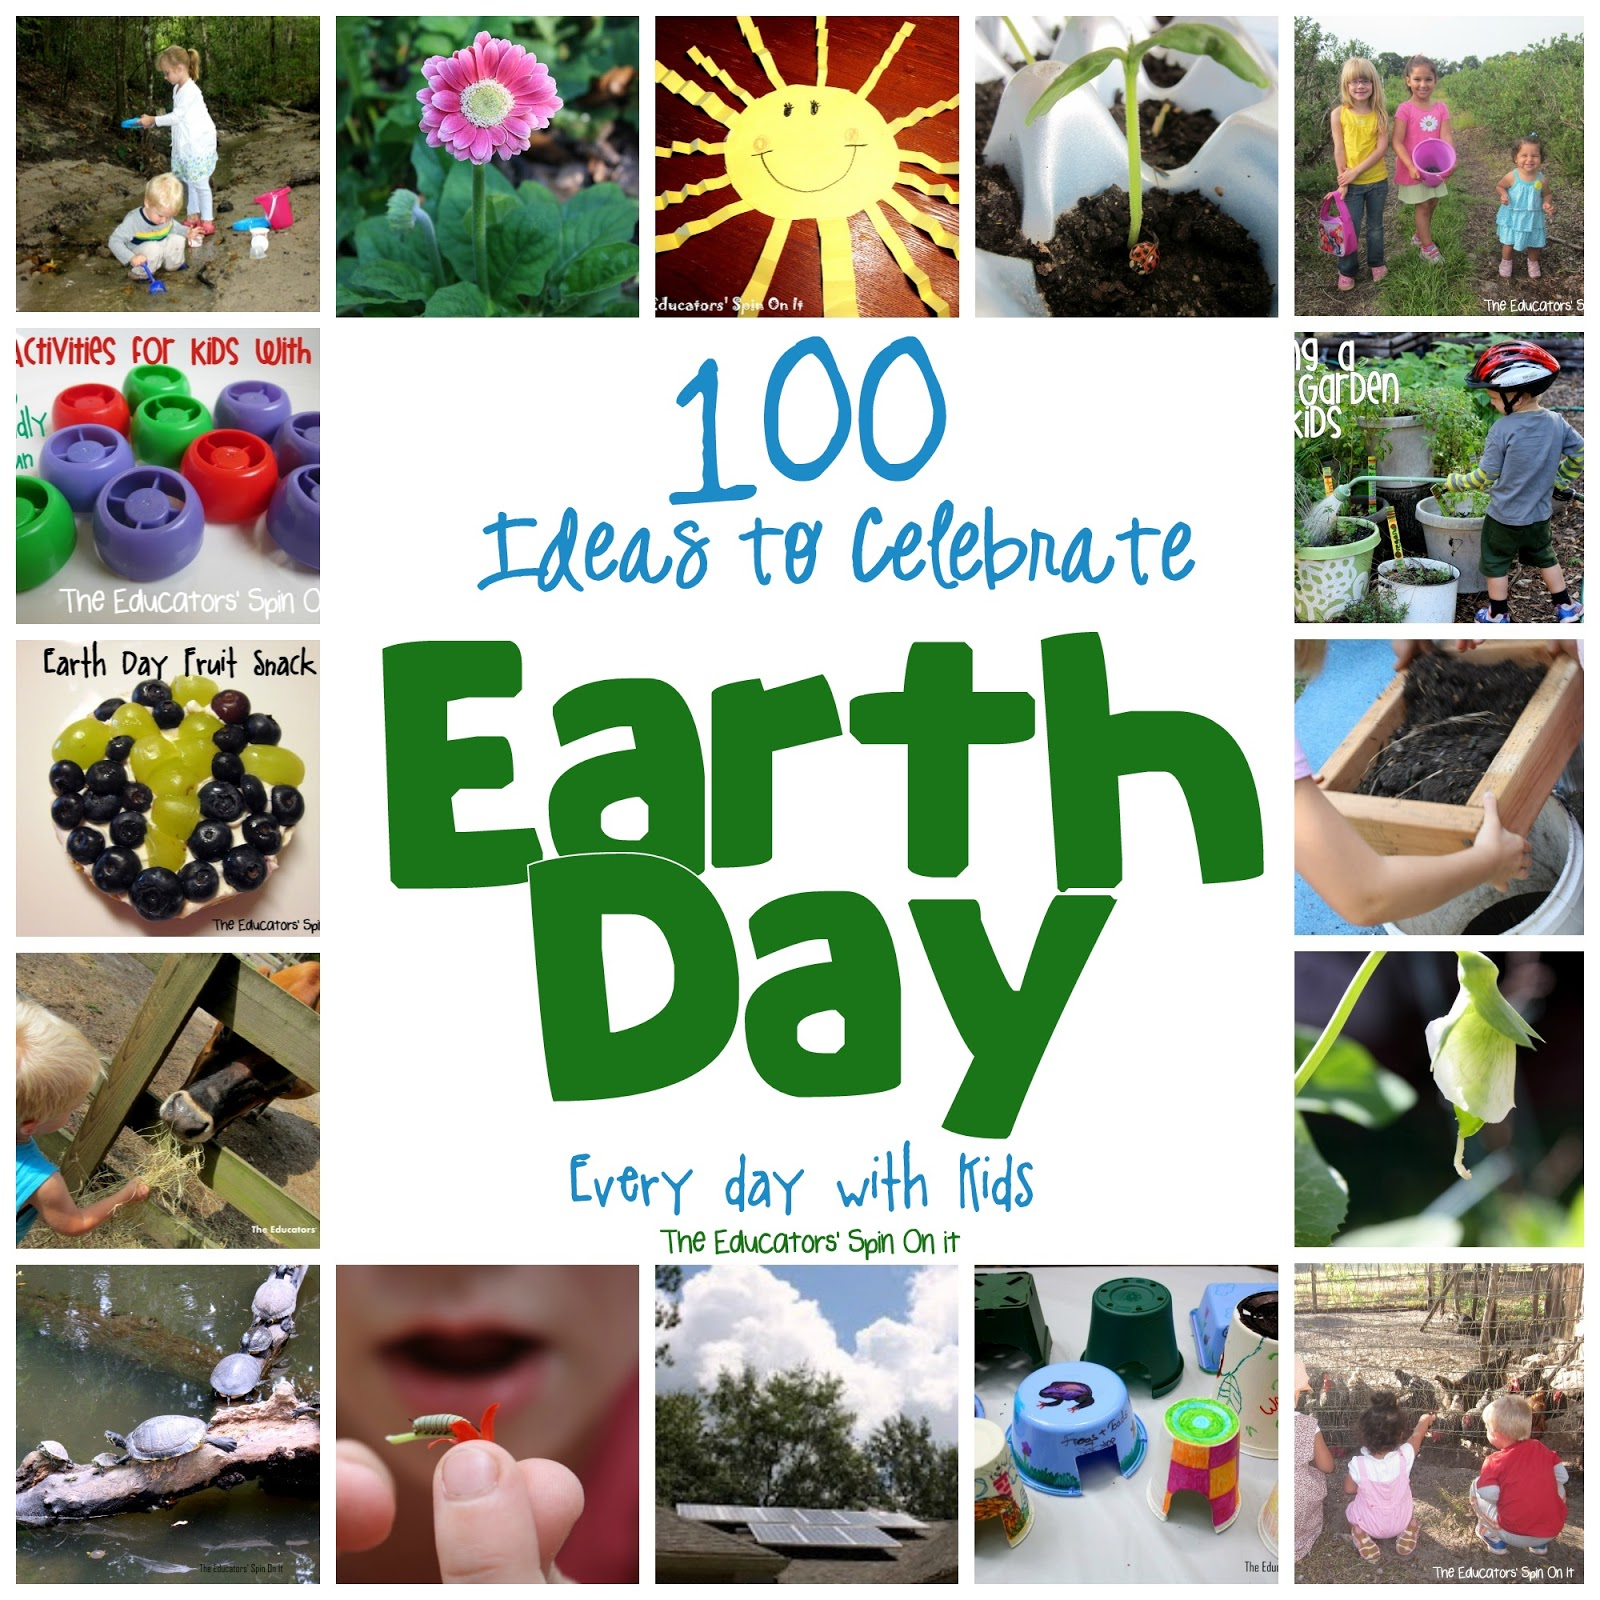 100 ways to celebrate earth day every day with kids